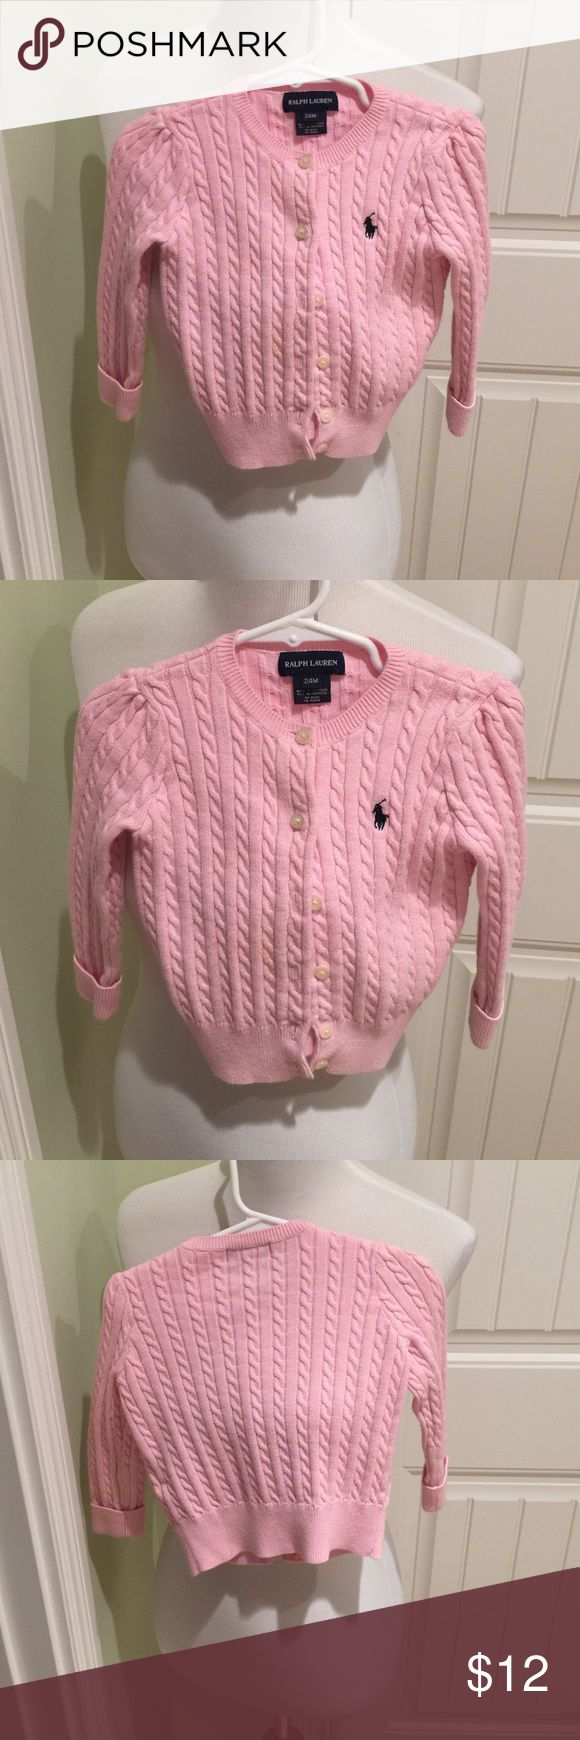 Ralph Lauren Cardigan Sweater. This pink cardigan sweater is great to put over any shirt. Super cute! Great Condition! Ralph Lauren Shirts & Tops Sweaters